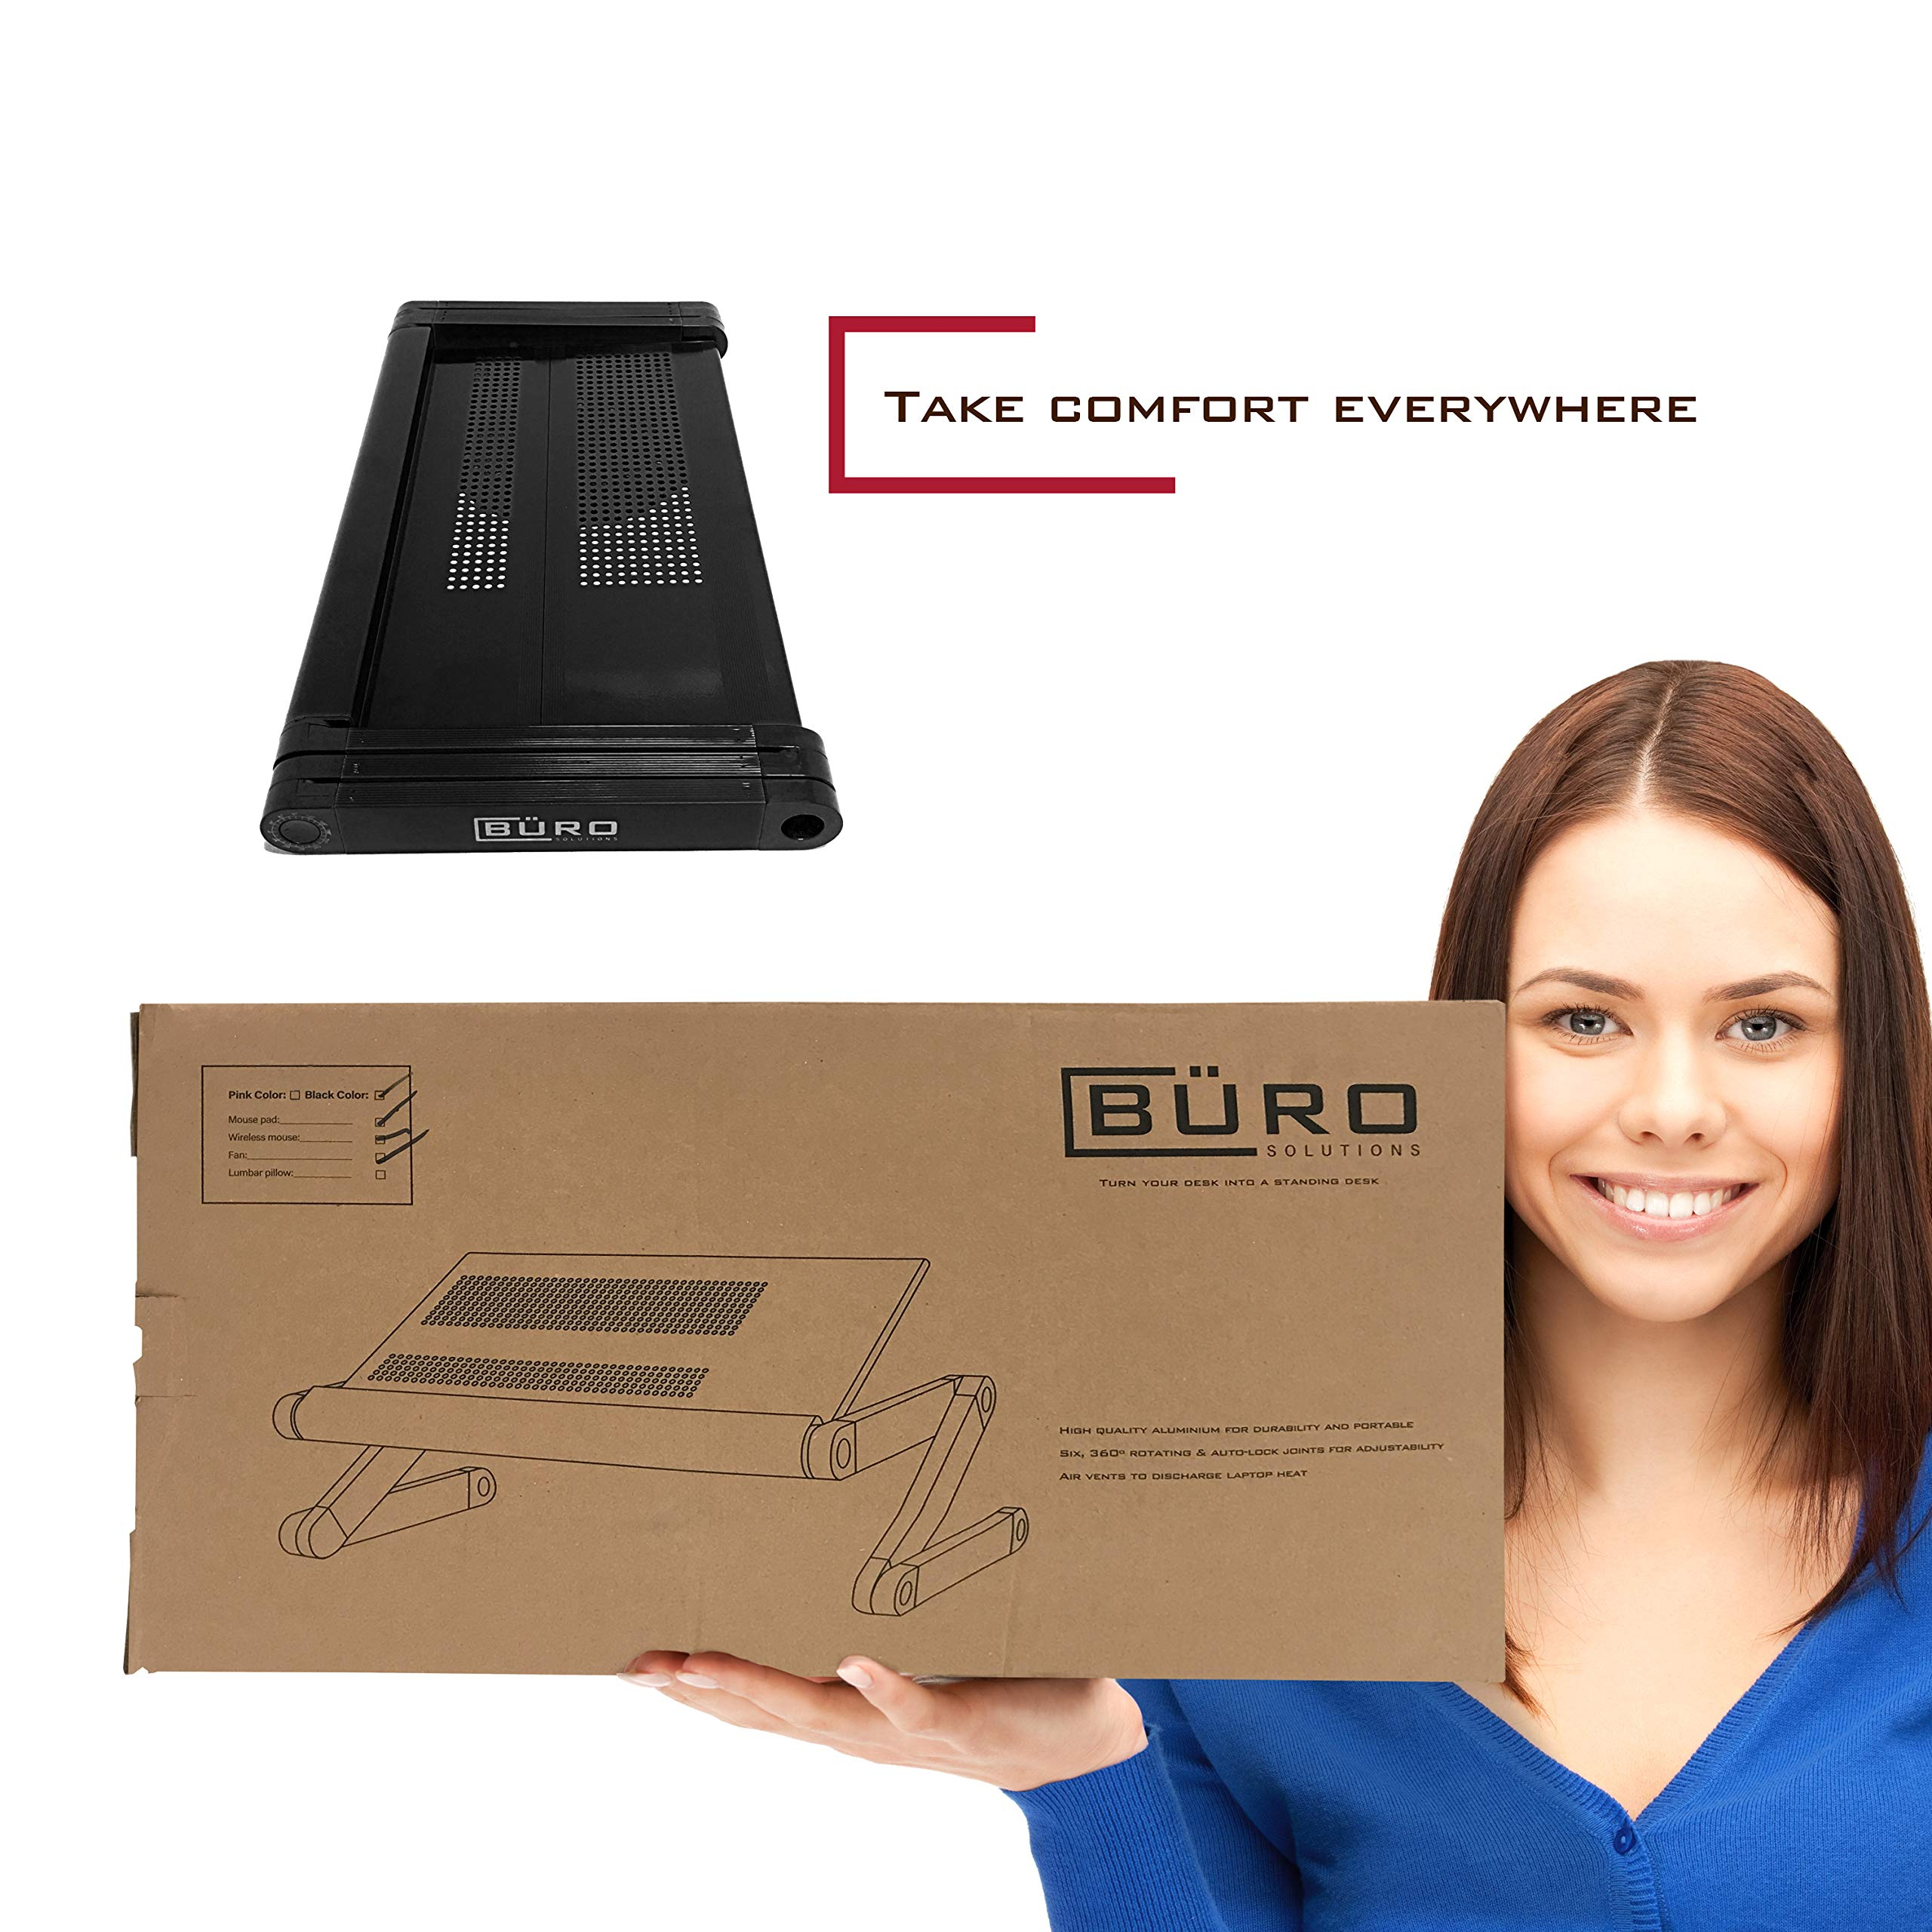 Height Laptop Holder is Adjustable for Desk Or Bed with Mouse and Mouse-pad | Black Color | Laptop Table Top with Vented Stand for Cooling | Comes with Side Tray for Mouse by Büro Solutions (Image #4)